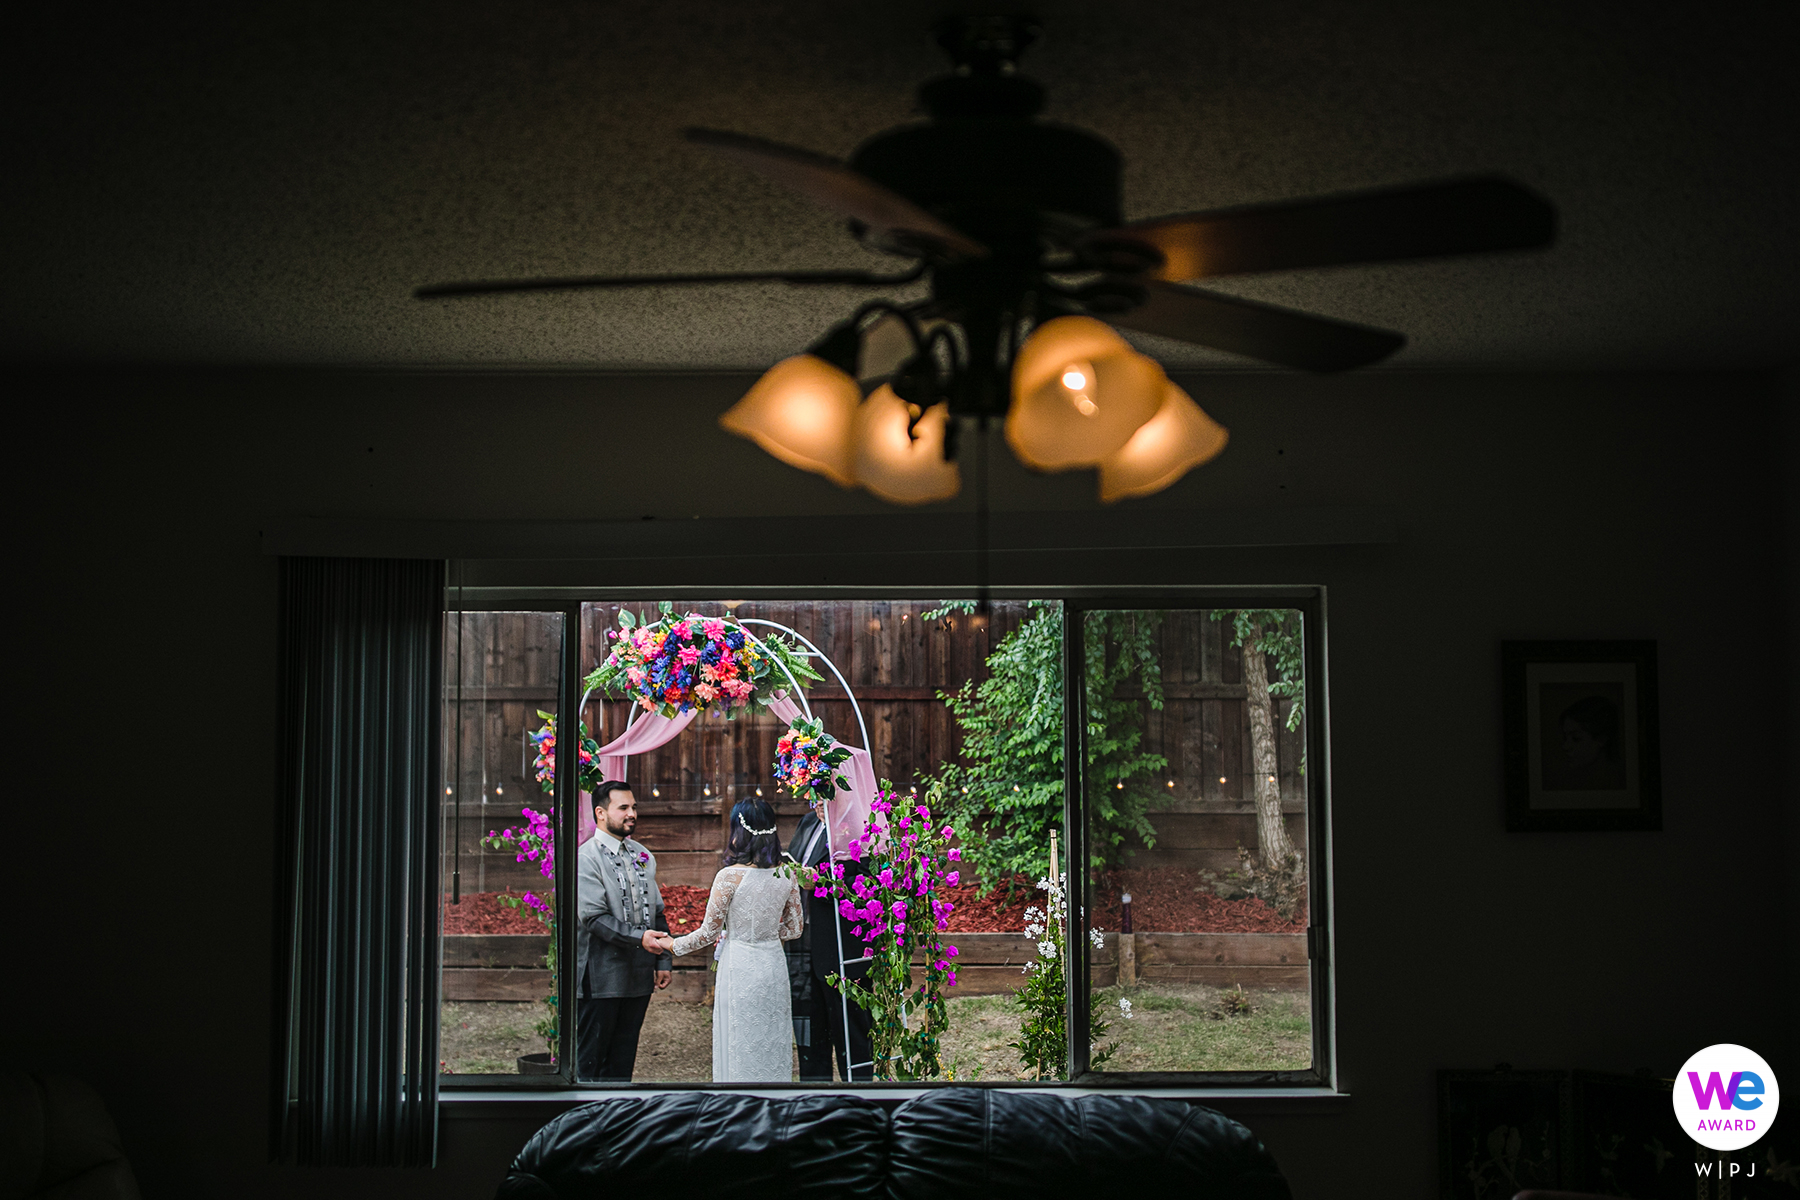 Wedding ceremony in their backyard Antioch, California - Elopement Photographer | Through the couple's living room window, we can see them in their backyard